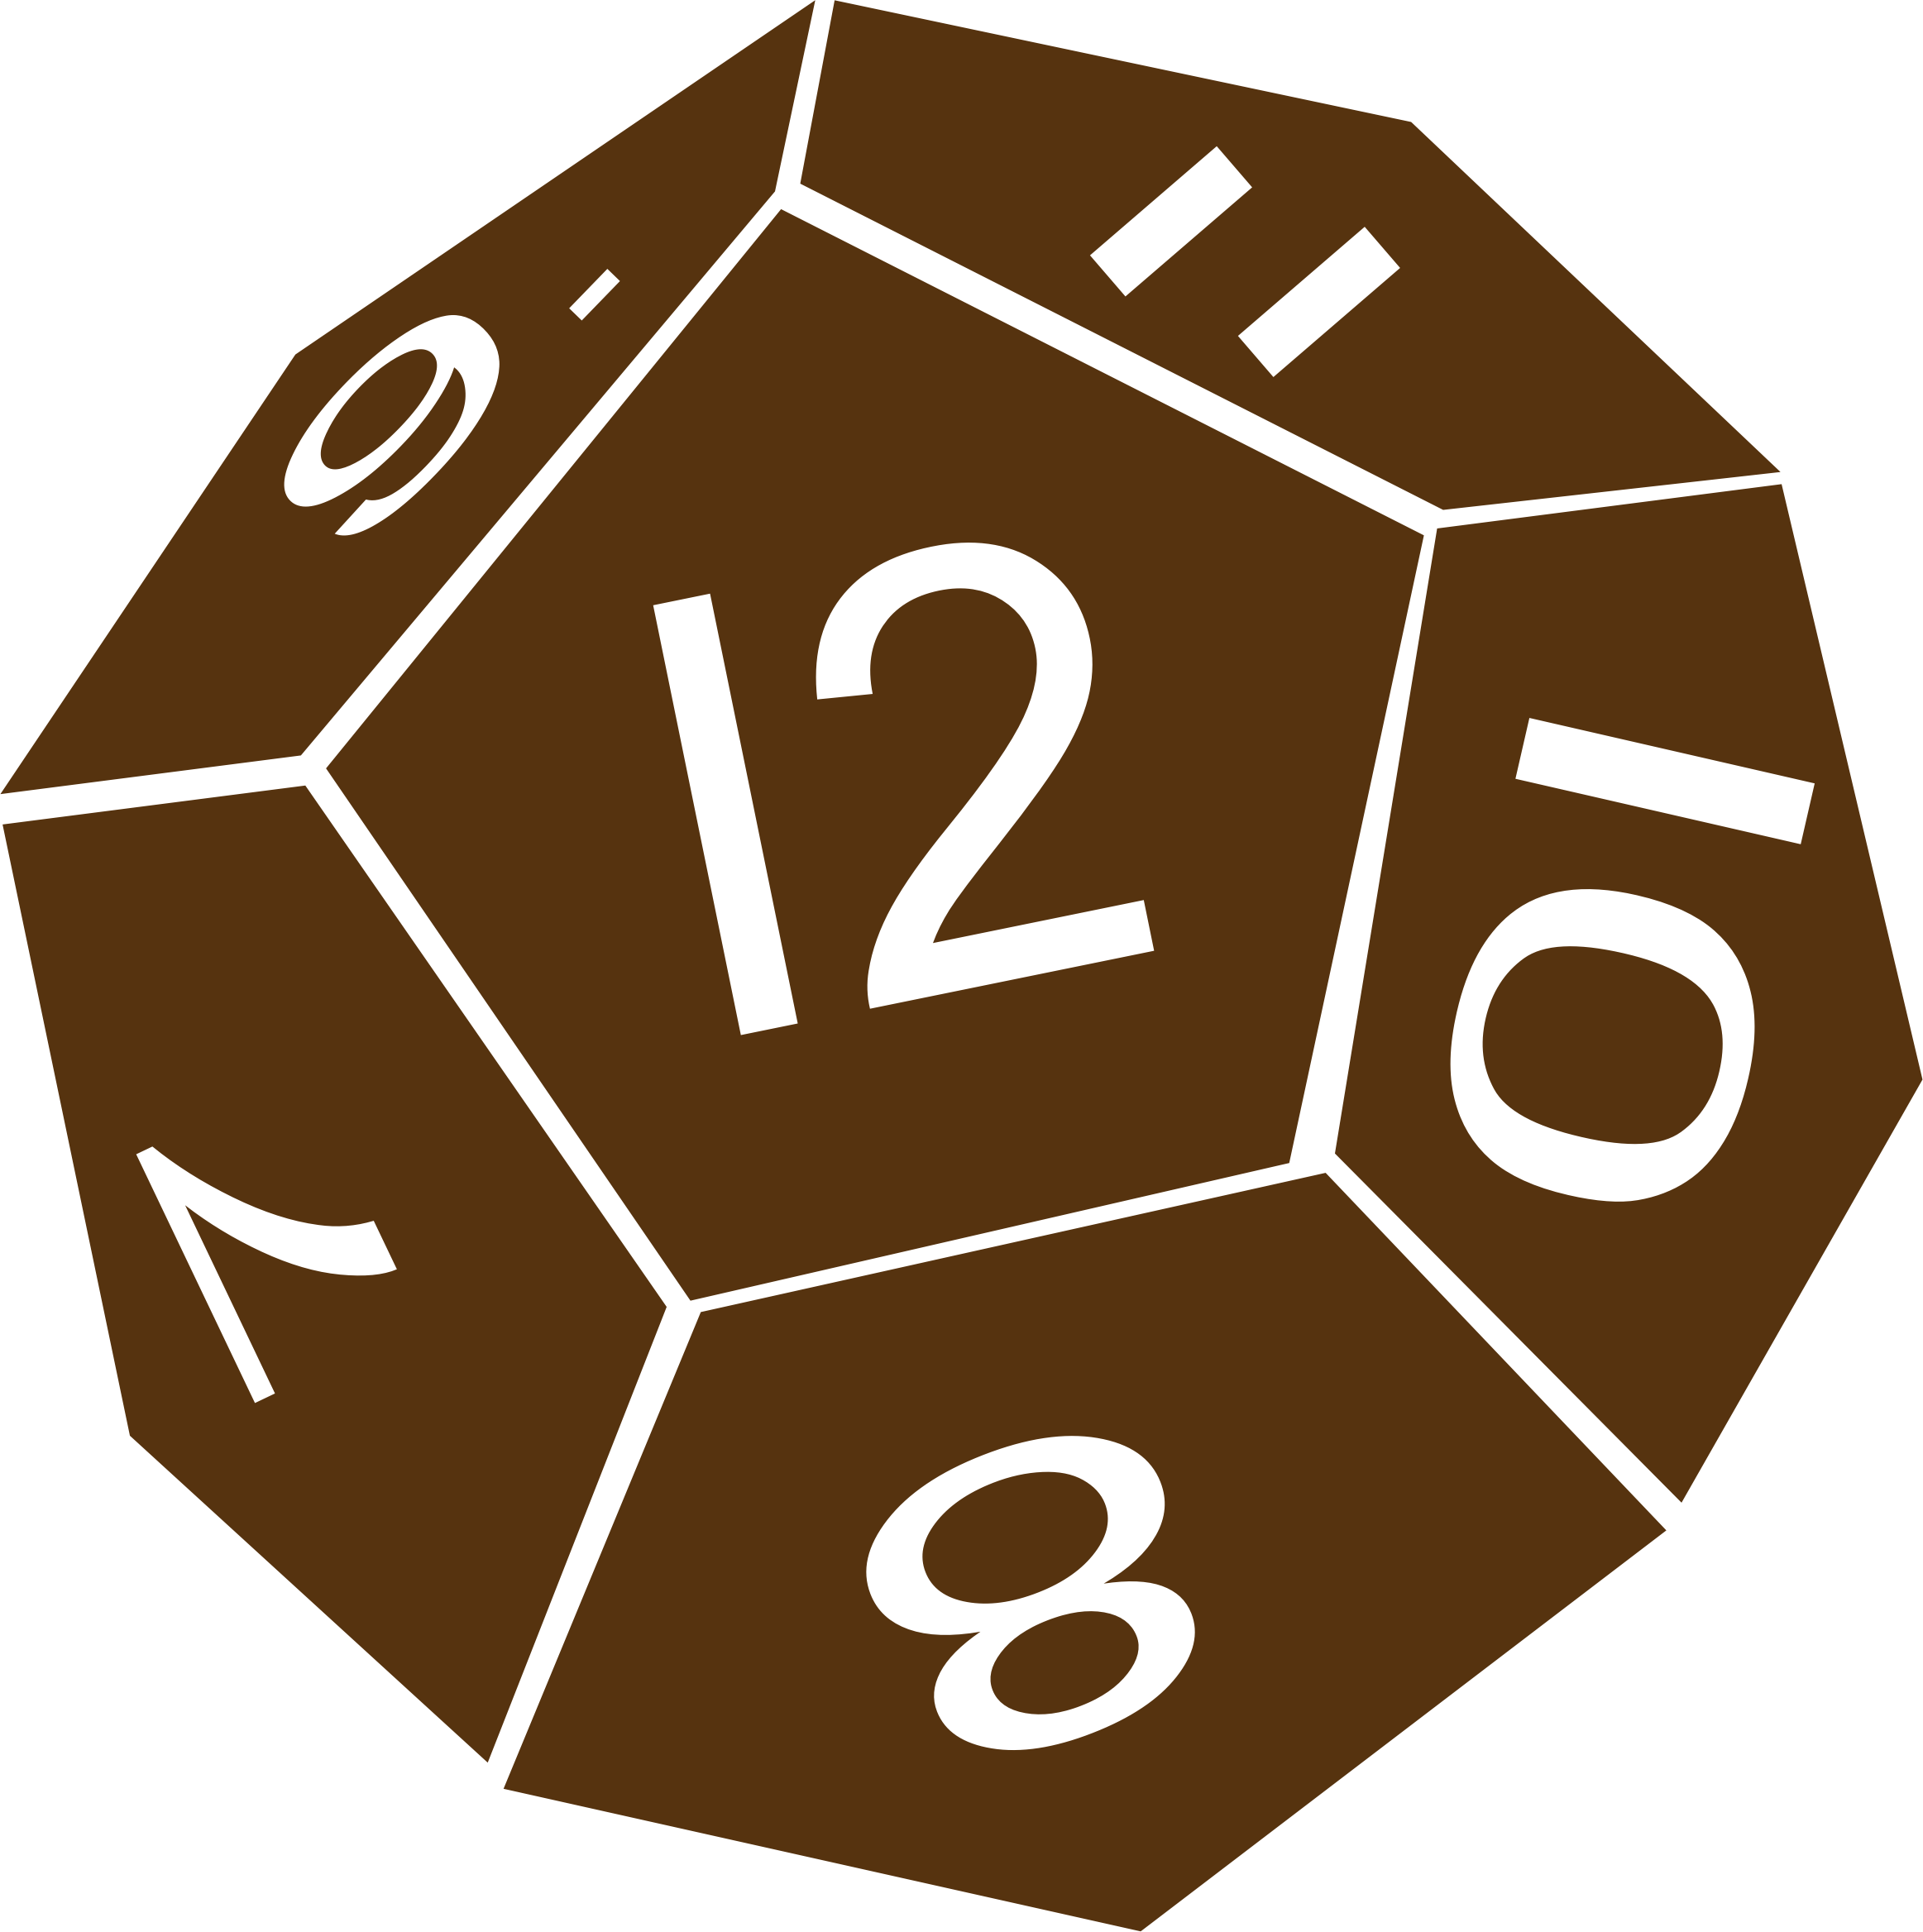 Dice clipart d12. D twelve sided icons